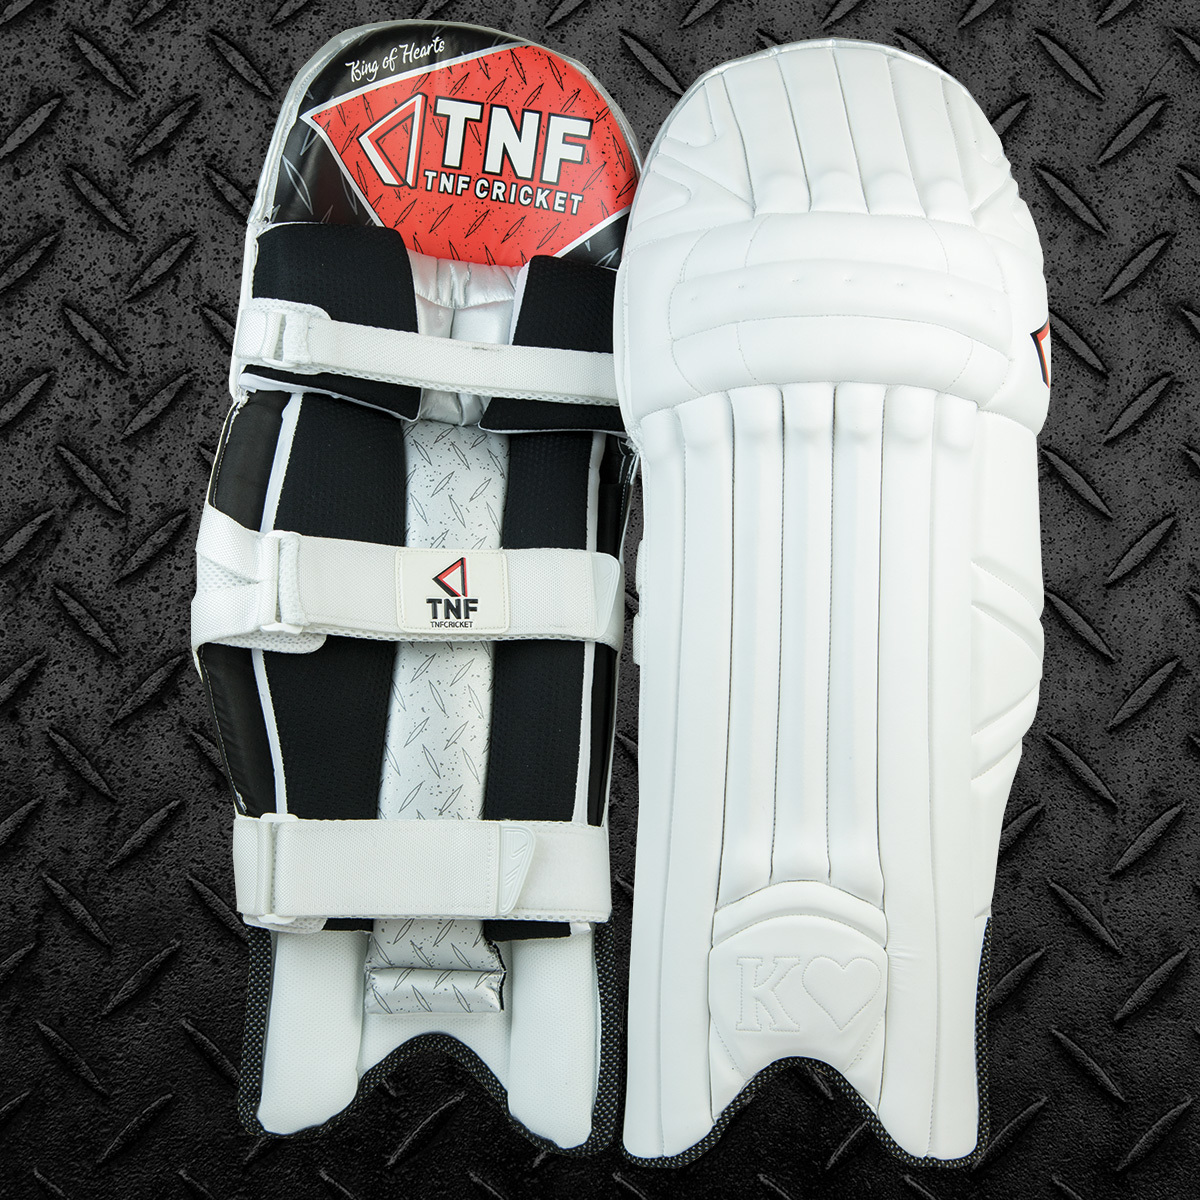 KingHearts-Products-Batting-Pad.jpg